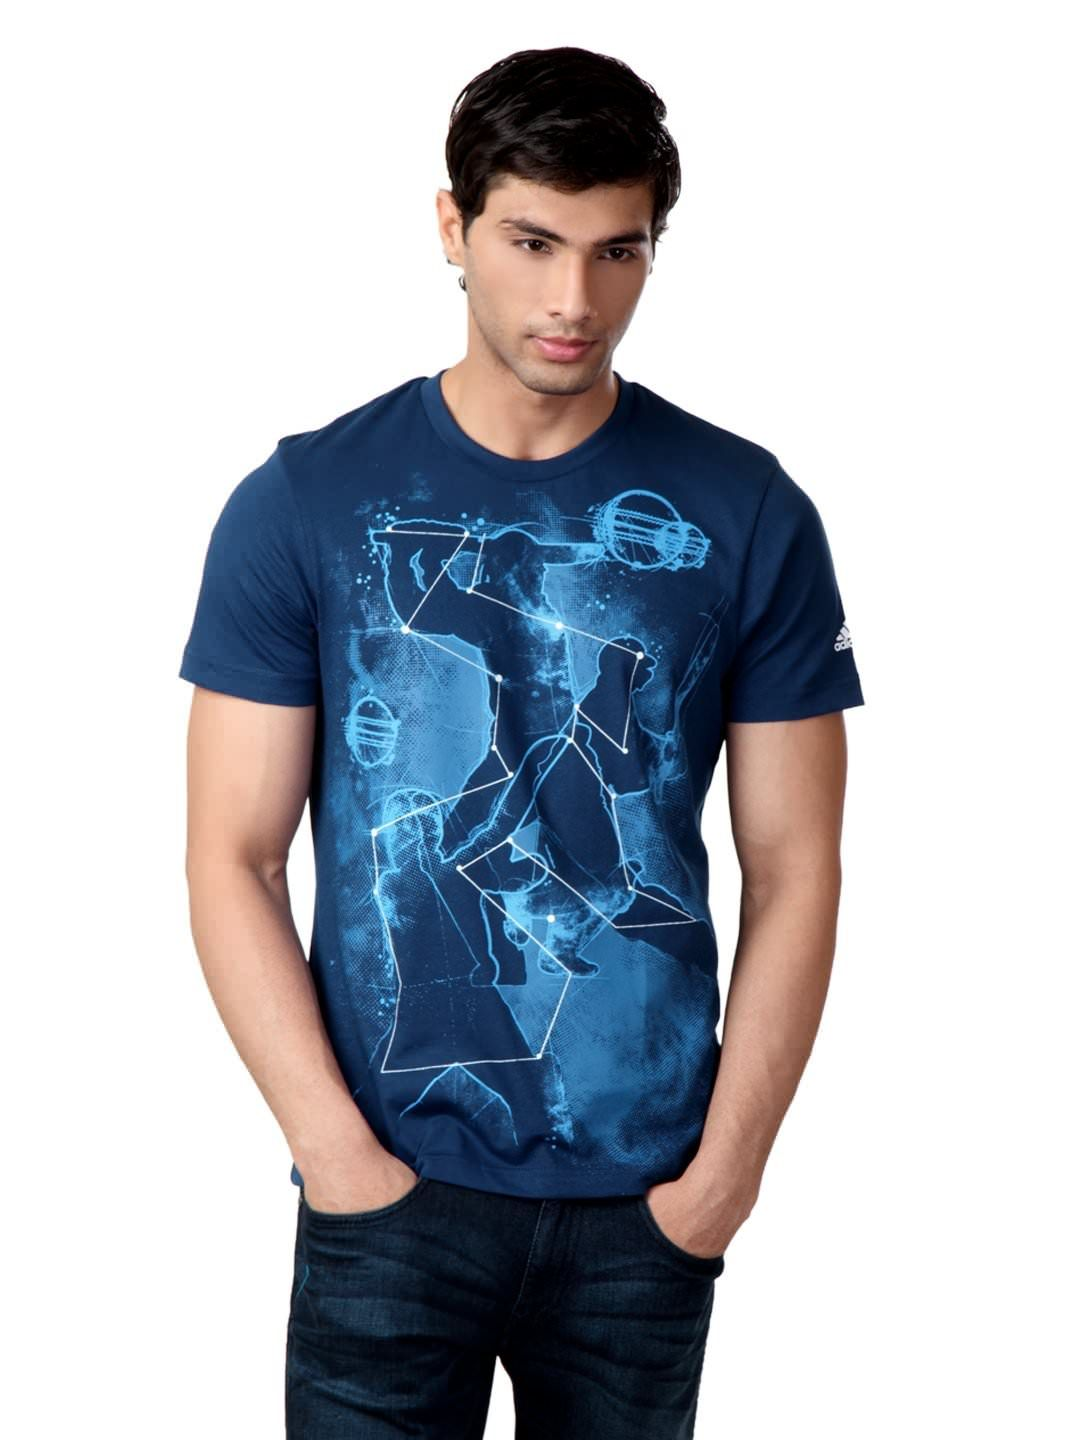 Men T Shirts | Clothing from luxury brands | Men's Eid Collection ...